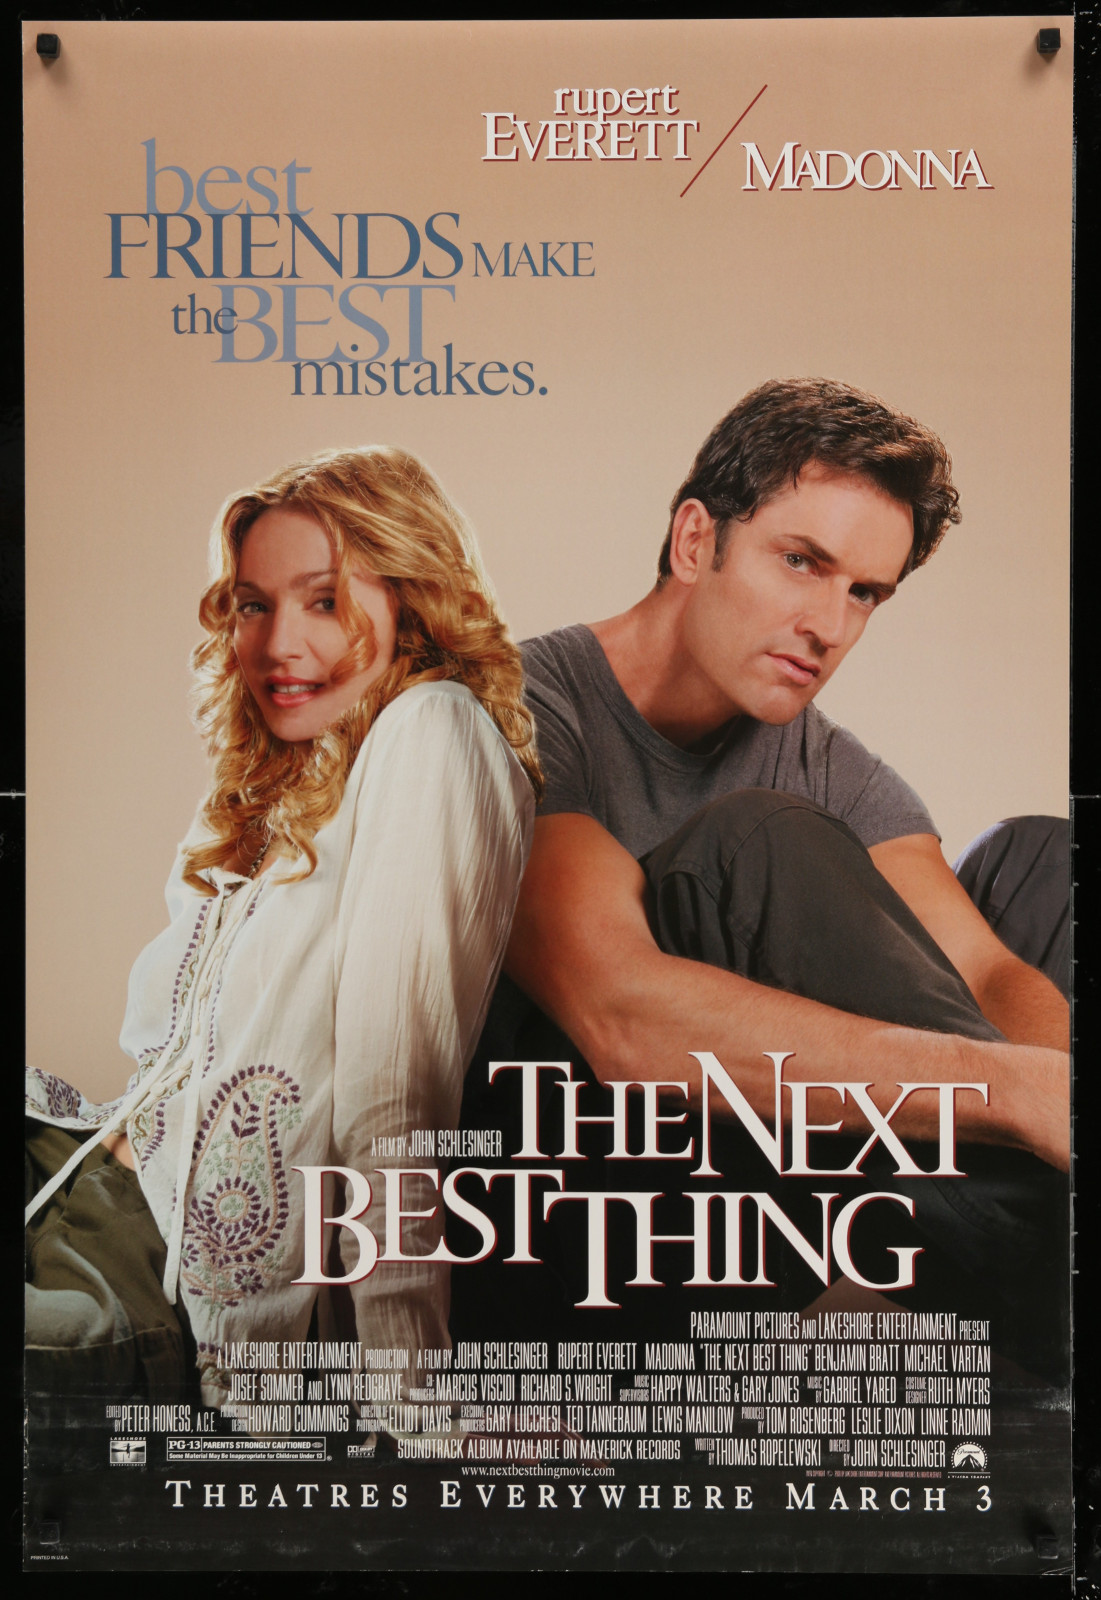 The Next Best Thing 2A438 A Part Of A Lot 18 Unfolded Double-Sided 27X40 Mostly Comedy One-Sheets '90S-00S Great Movie Images!